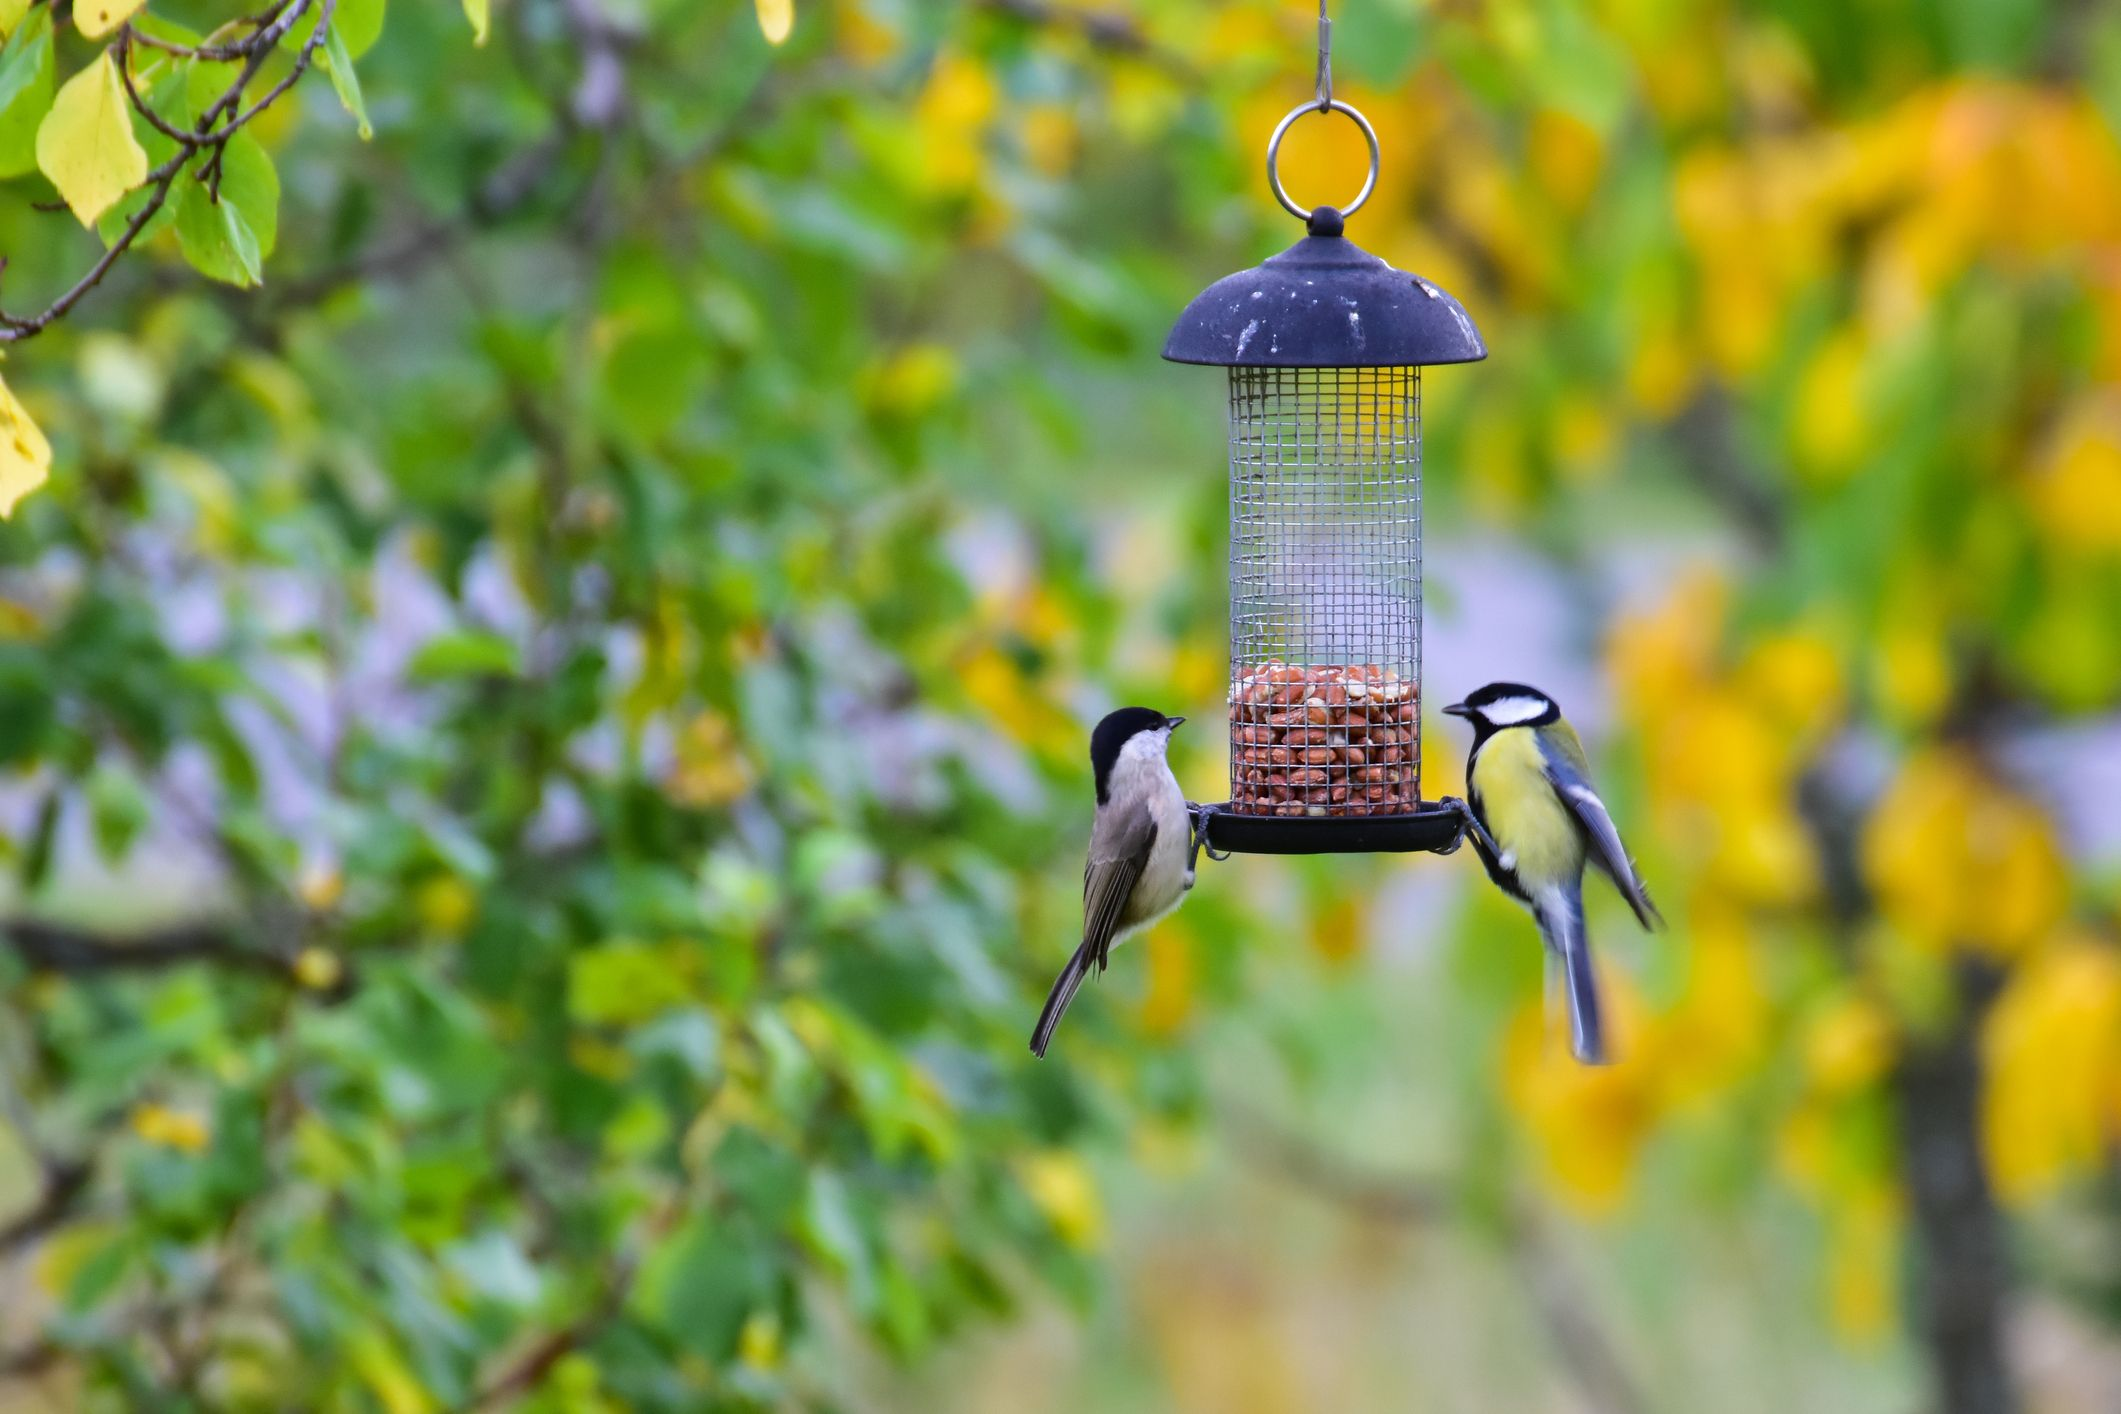 The Best Squirrel-Proof Bird Feeders You Can Buy for Your Backyard